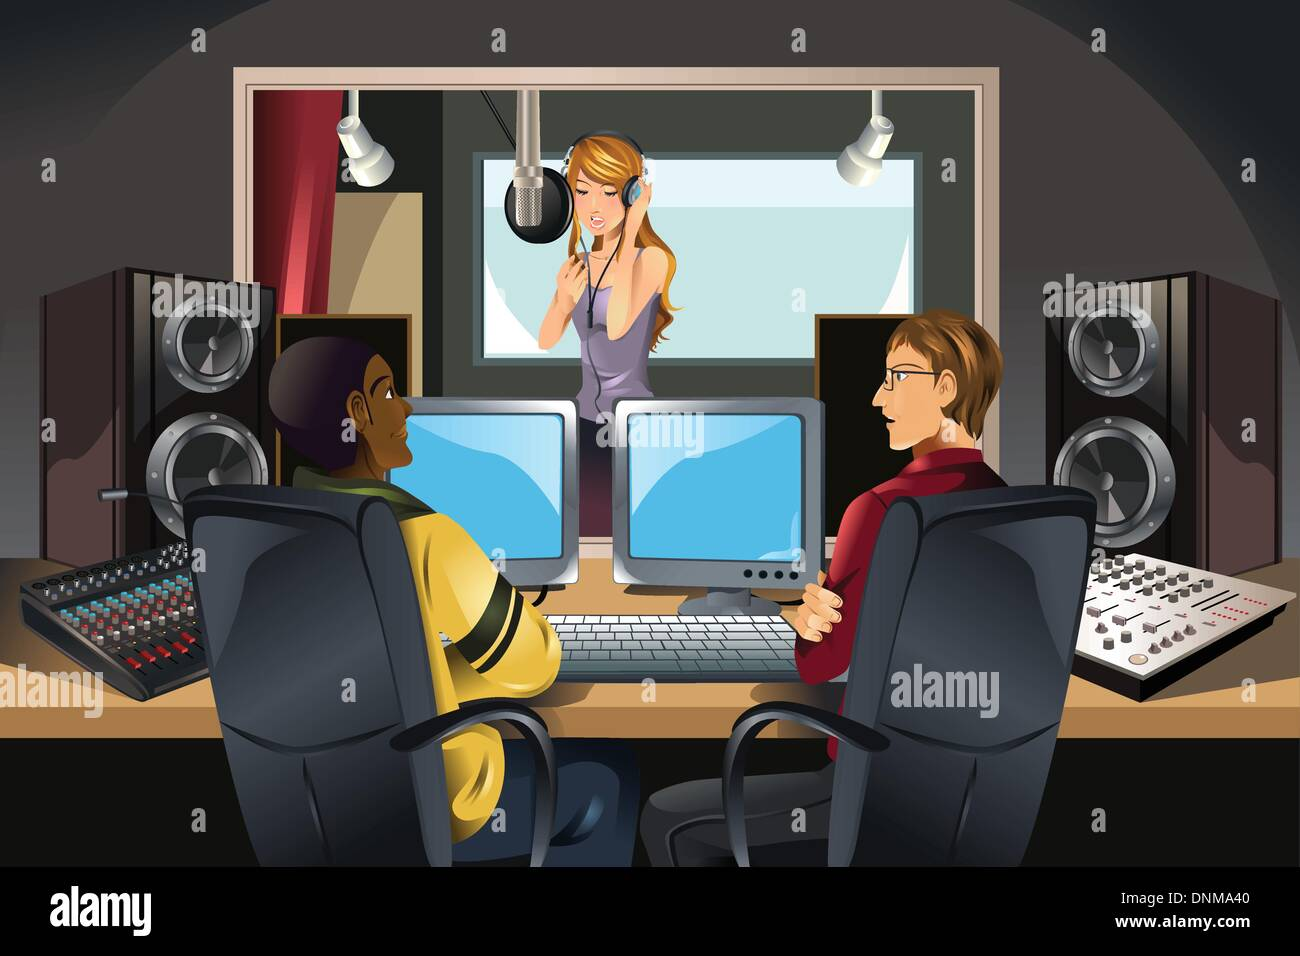 A vector illustration of a singer singing in a studio being listened to by music producers - Stock Vector